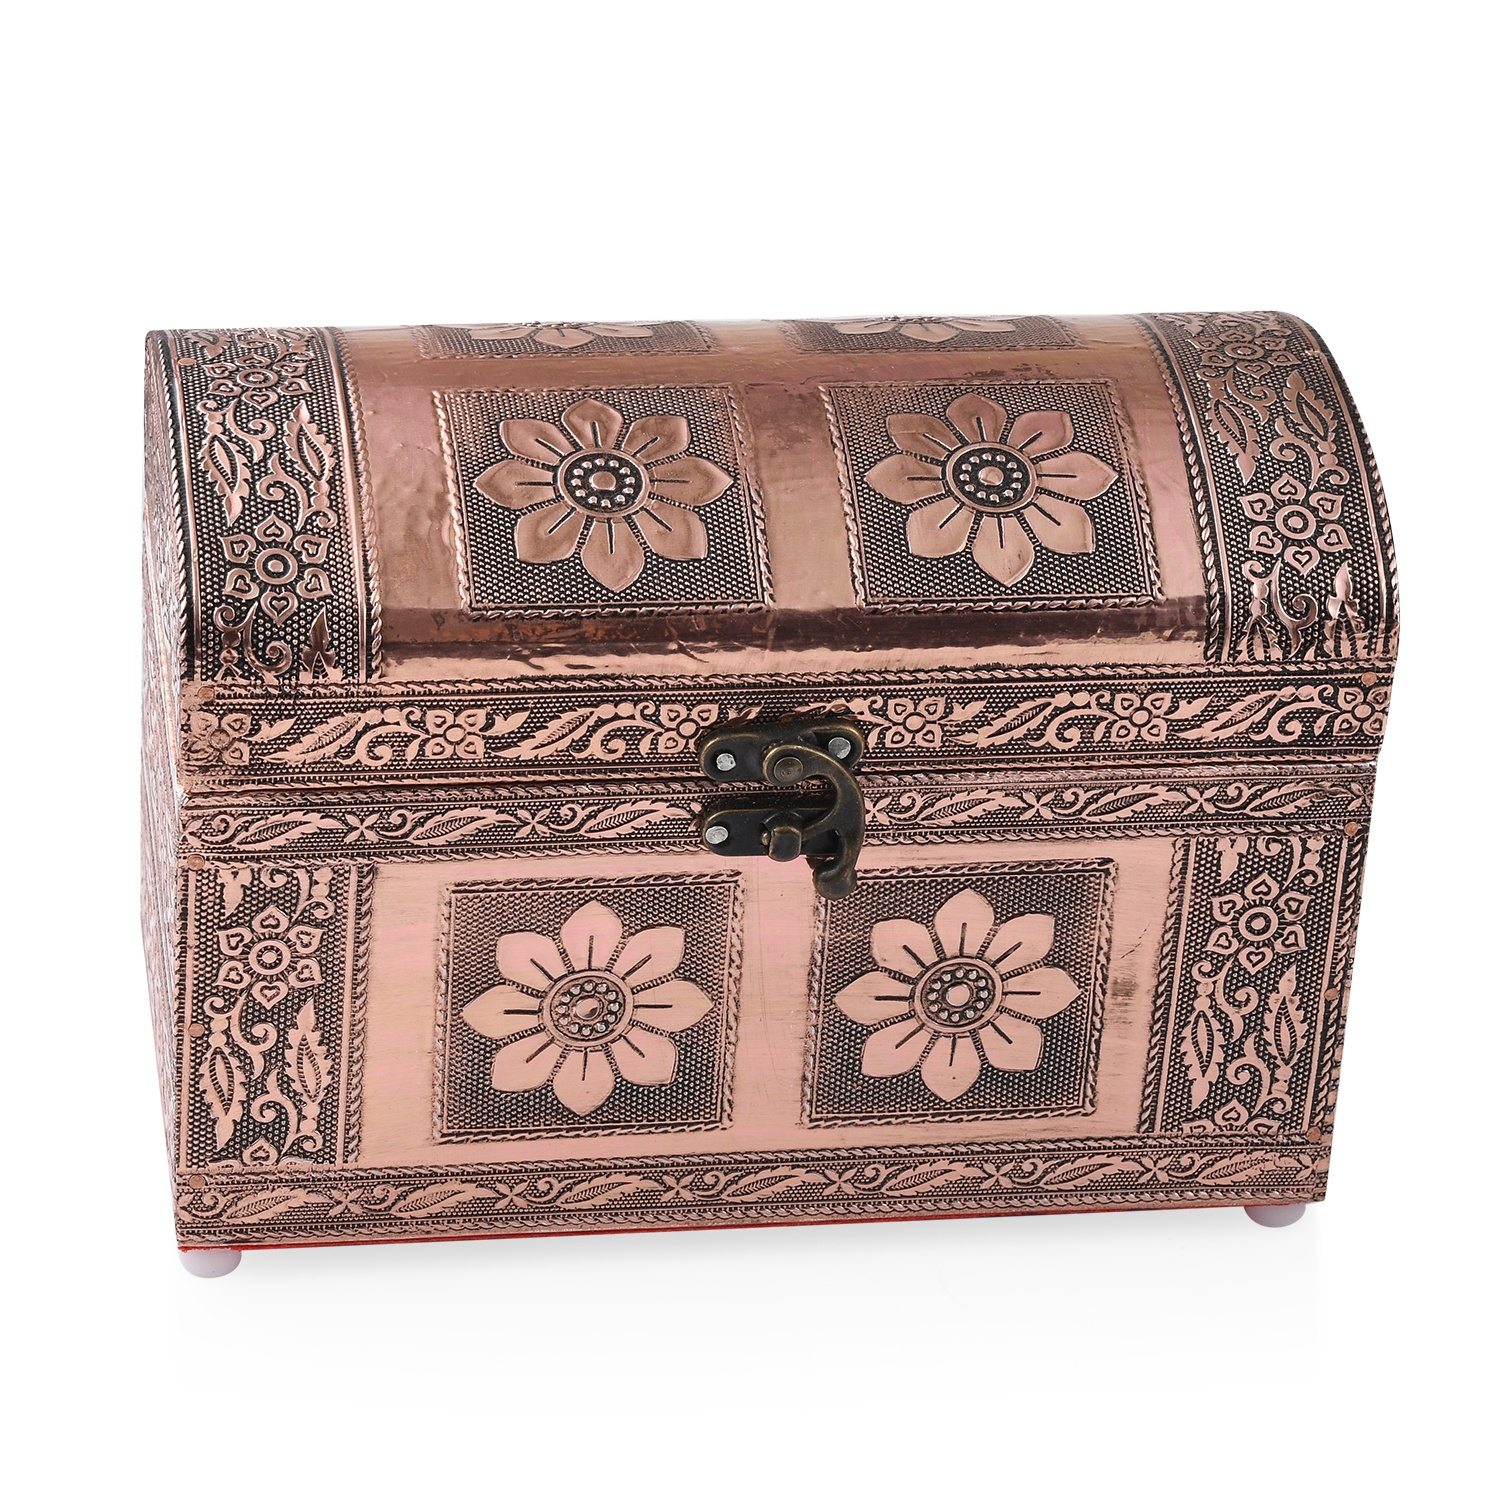 Rose Gold Oxidized Decorative Small Treasure Box 8x4.35x5.5""